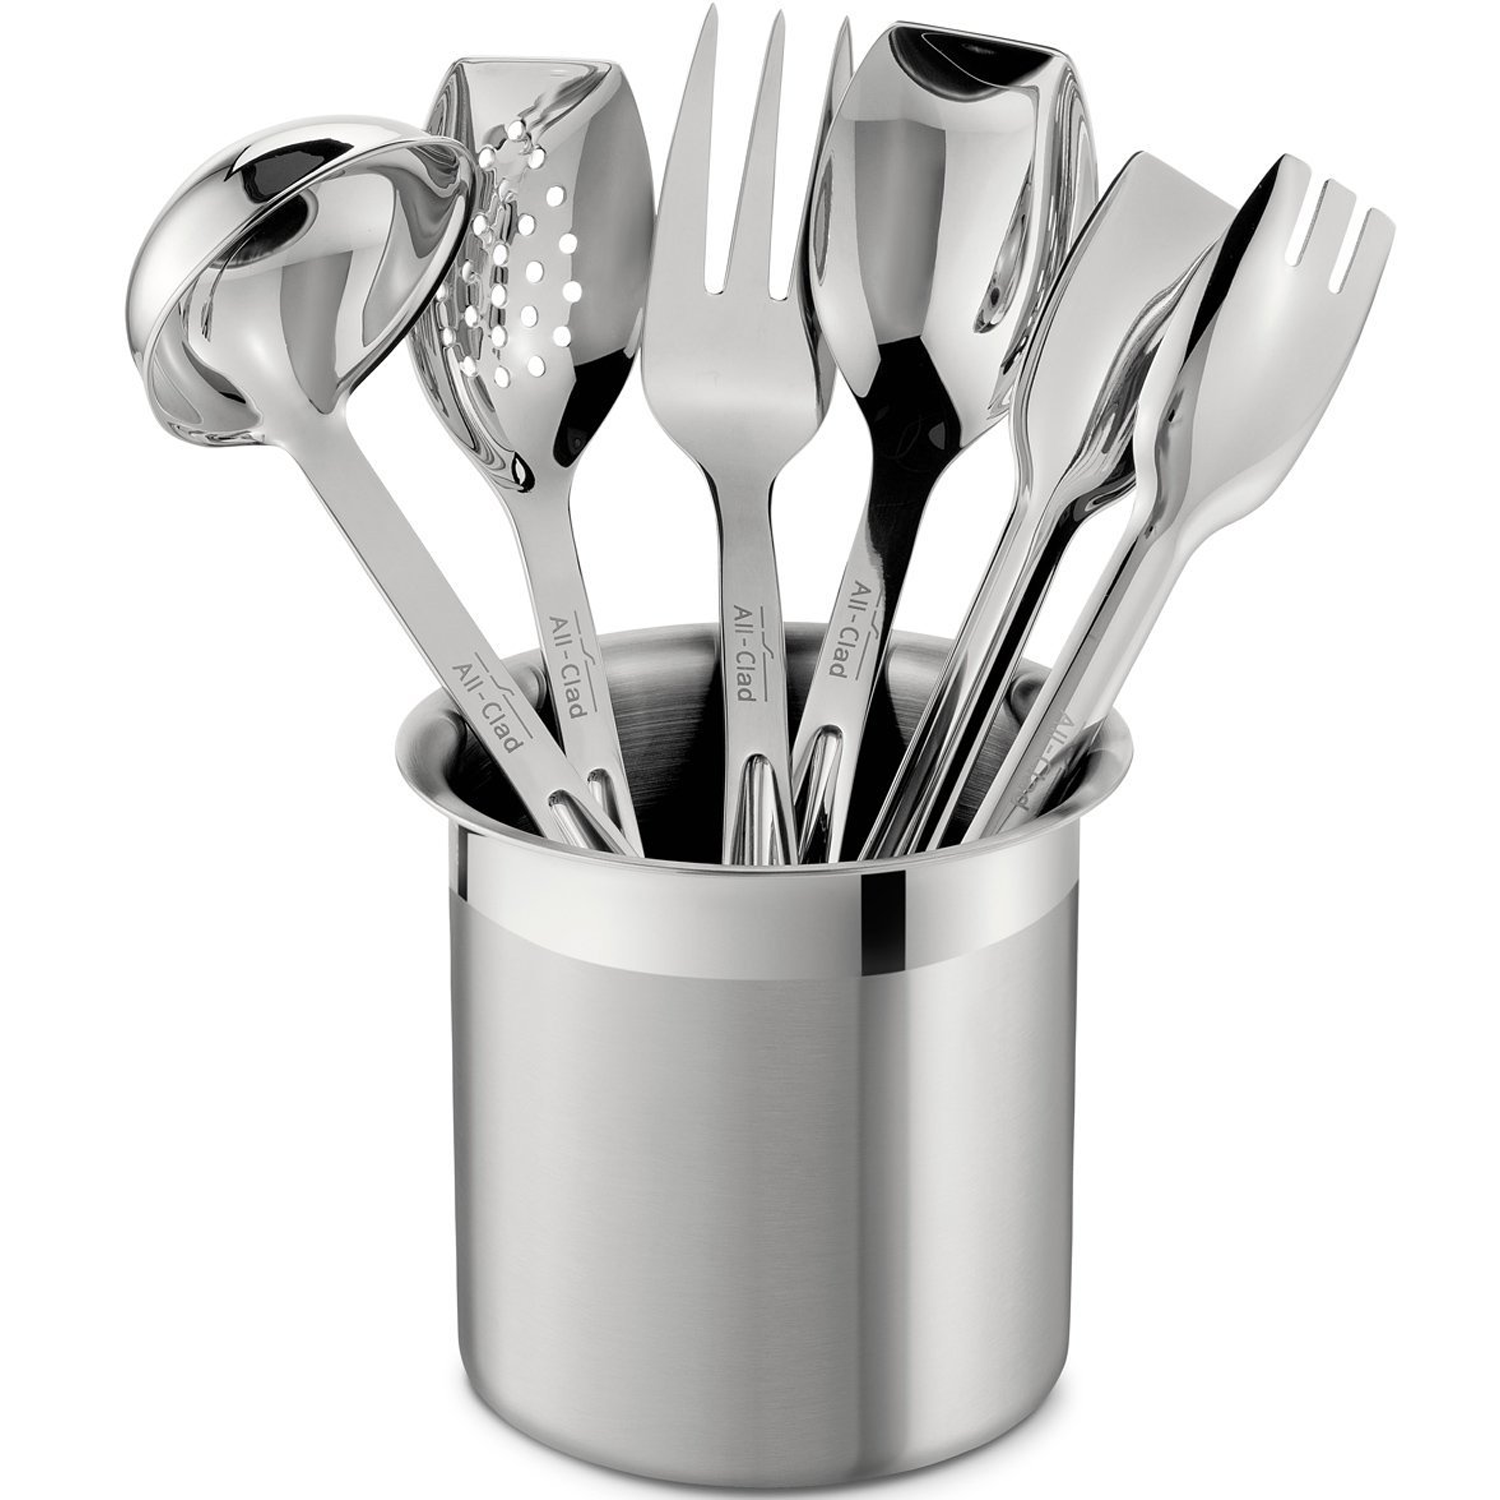 ALL-CLAD 6-PIECE COOK SERVE TOOL SET